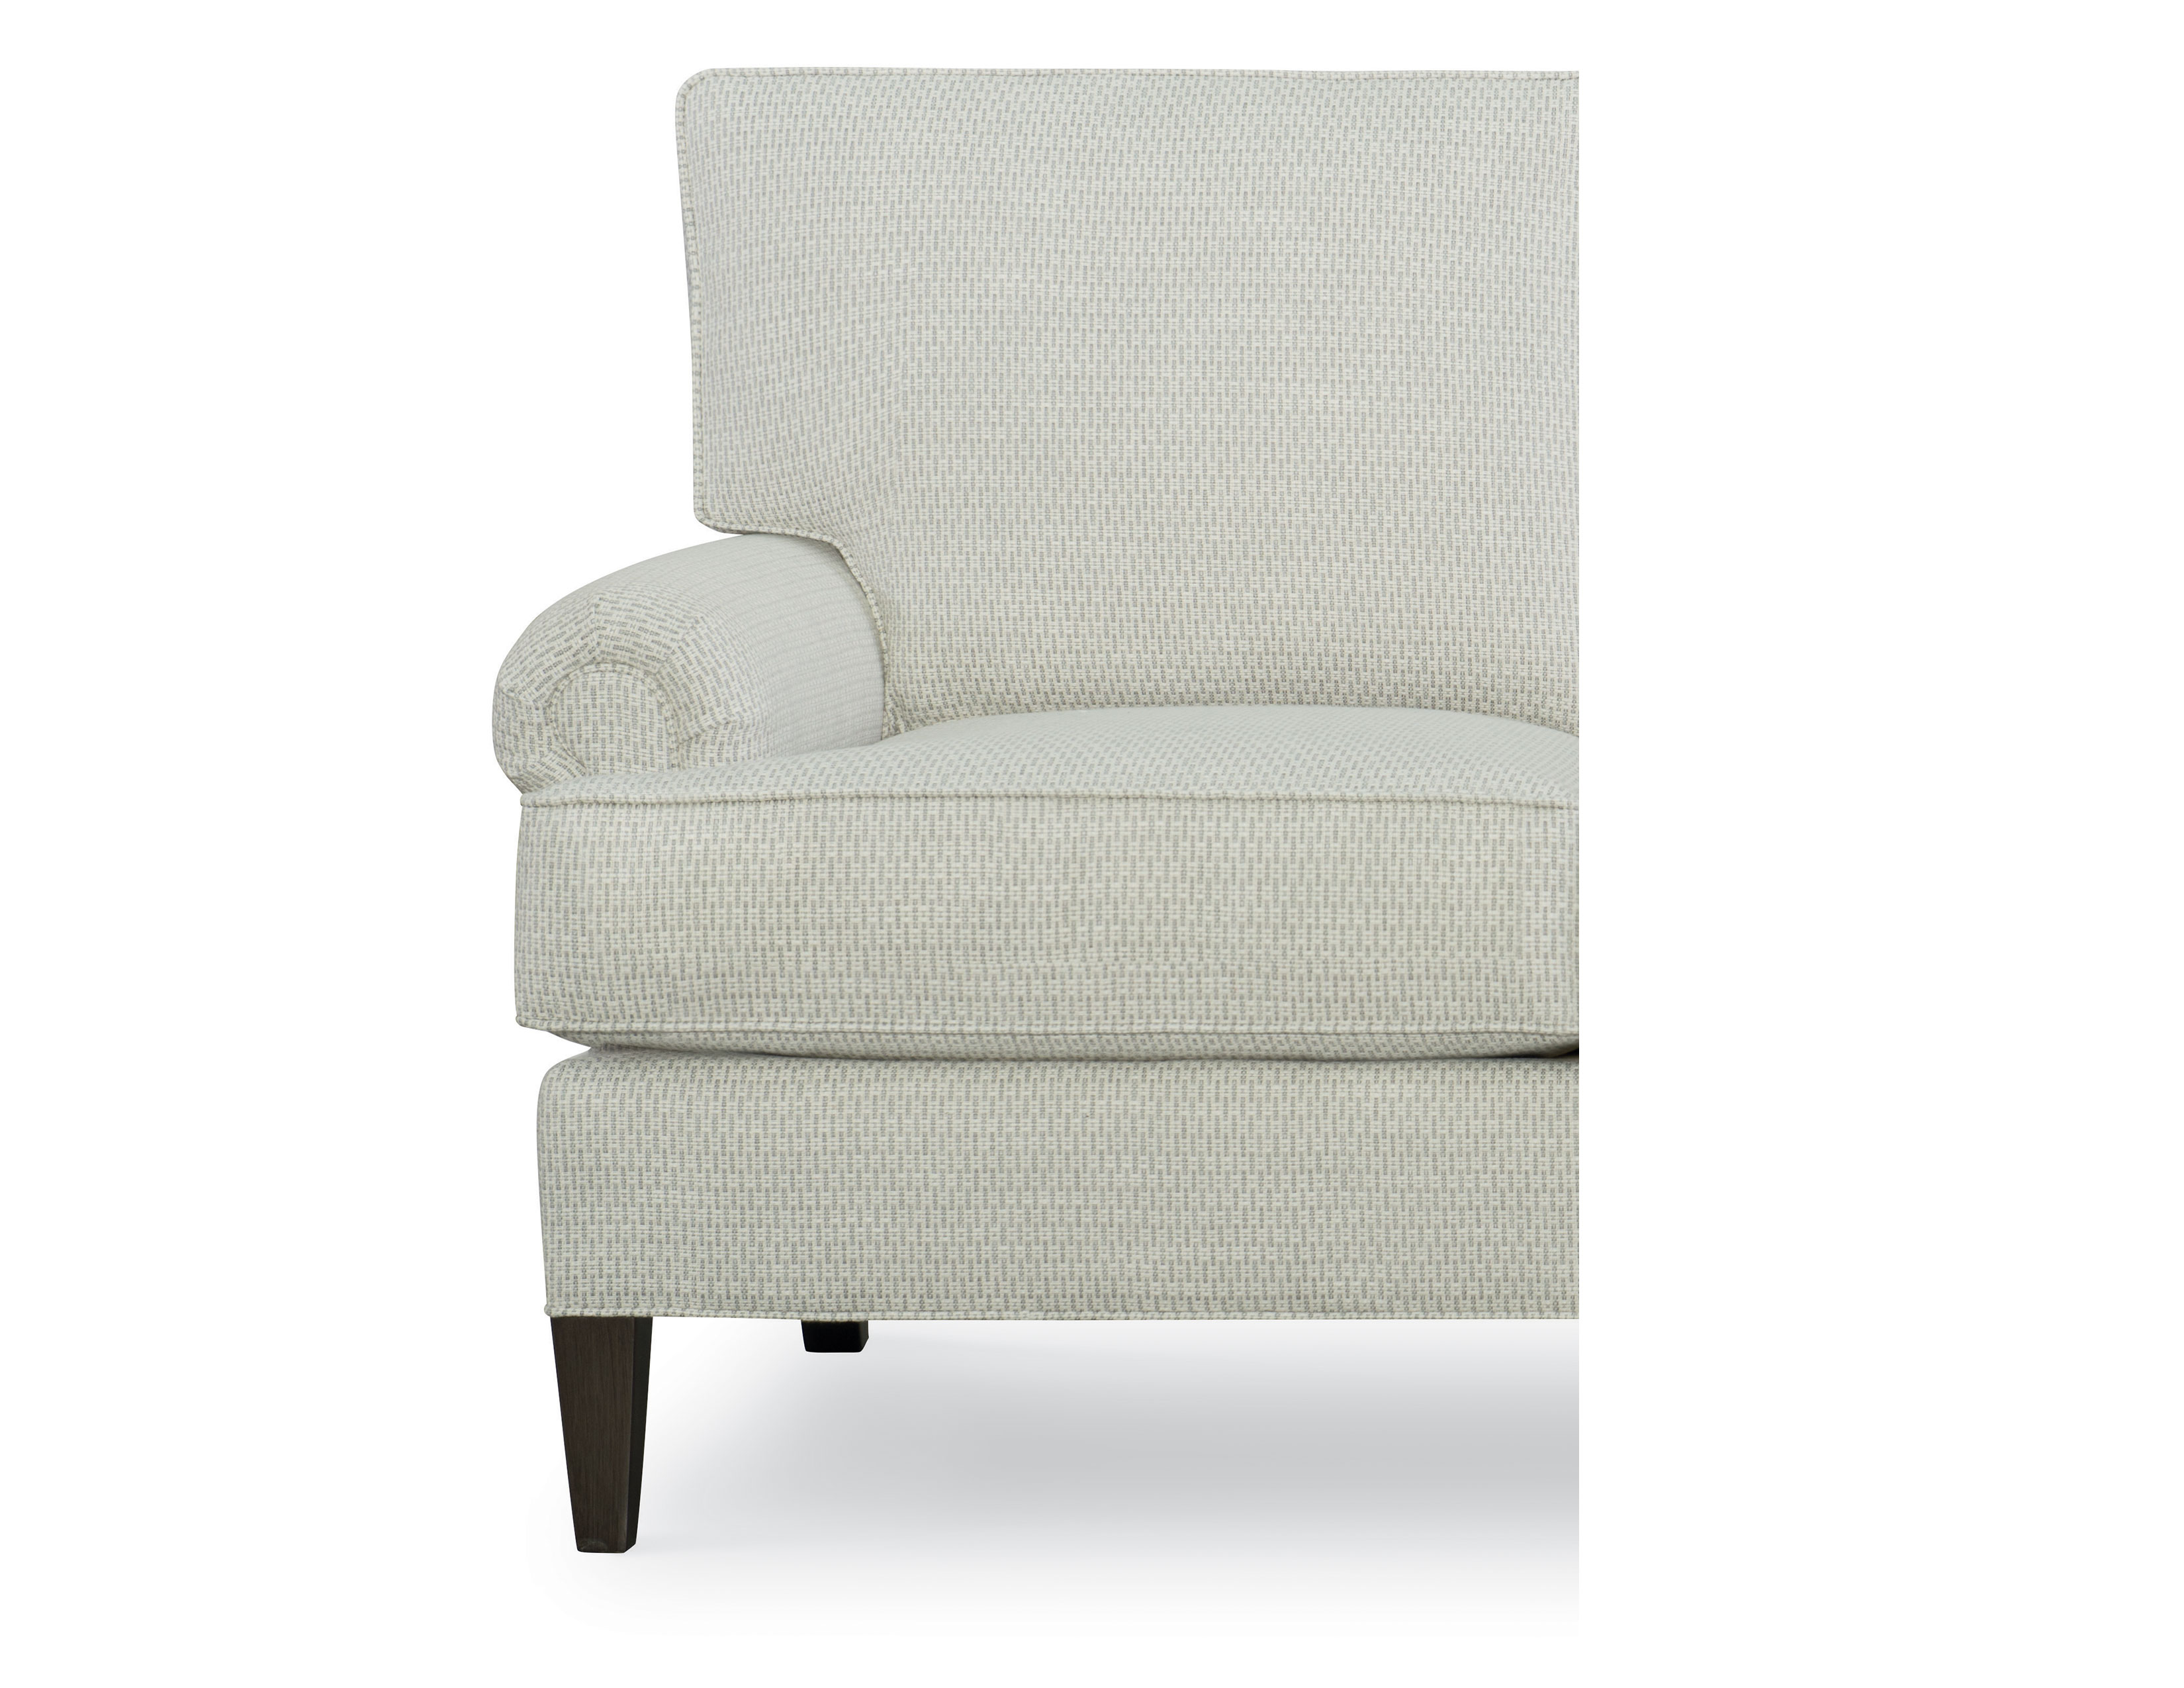 Tremendous Lola 75 81 Or 88 Sofa Made Sofas And Sectionals Caraccident5 Cool Chair Designs And Ideas Caraccident5Info